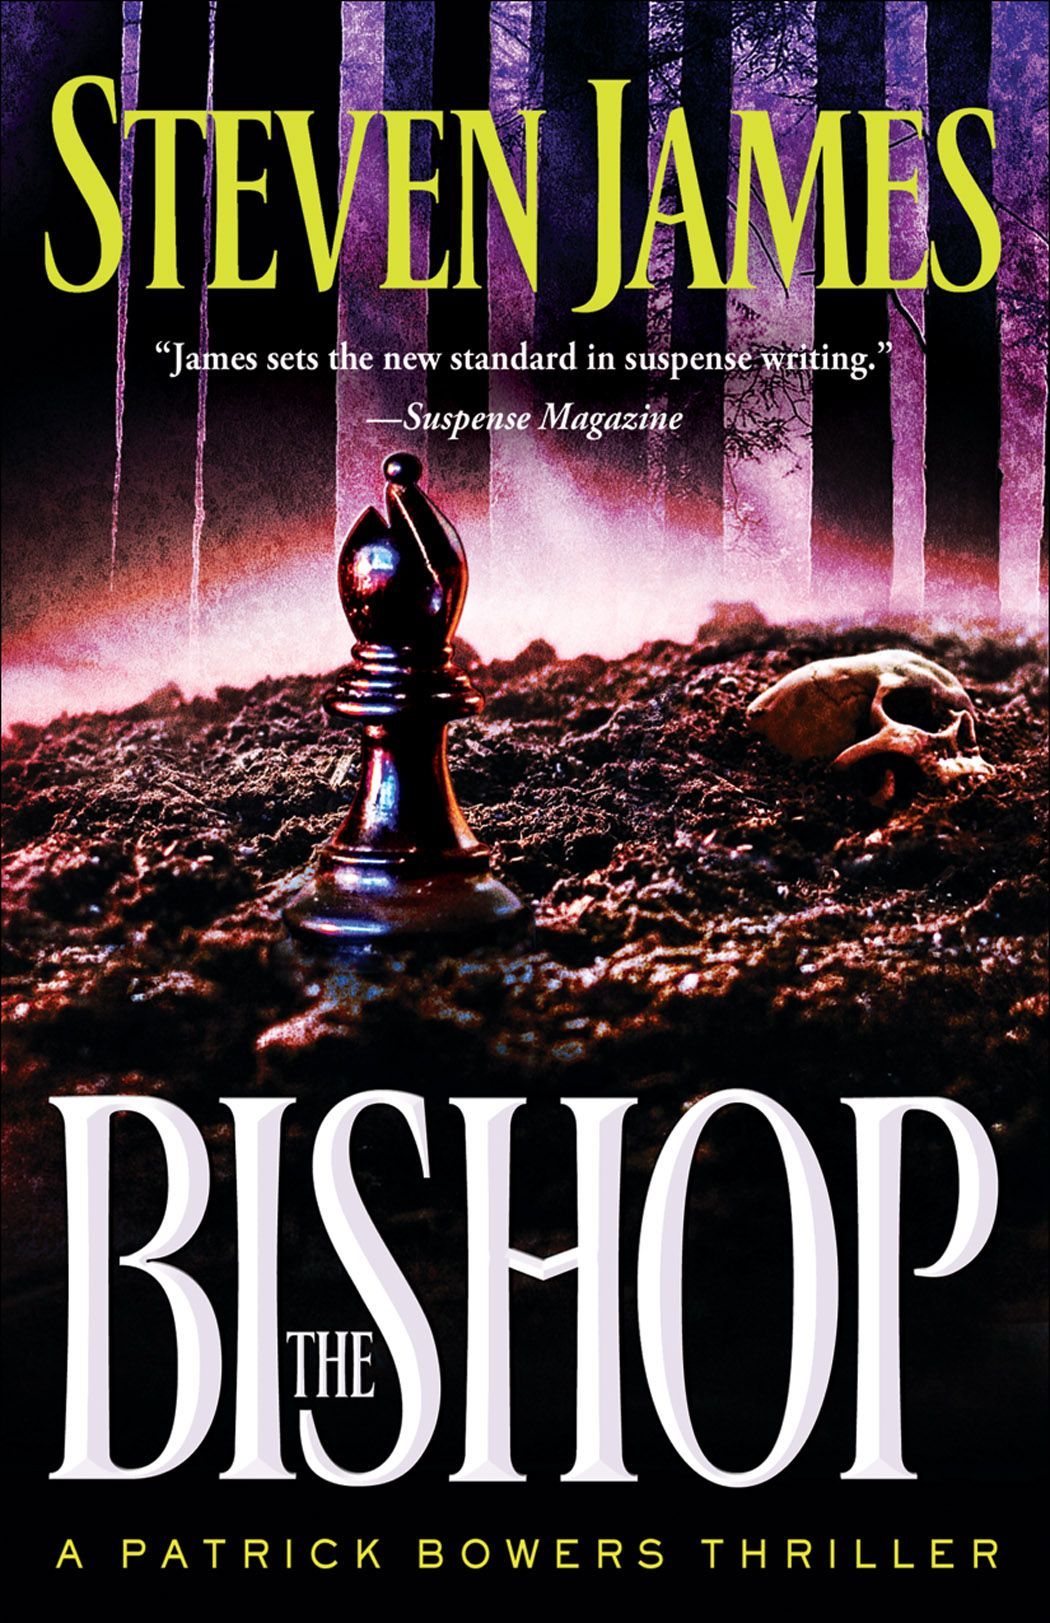 The Bishop is a gripping, adrenaline-laced story for readers who are tired of timid thrillers. Strap on your seat belt and get ready for a wild ride.